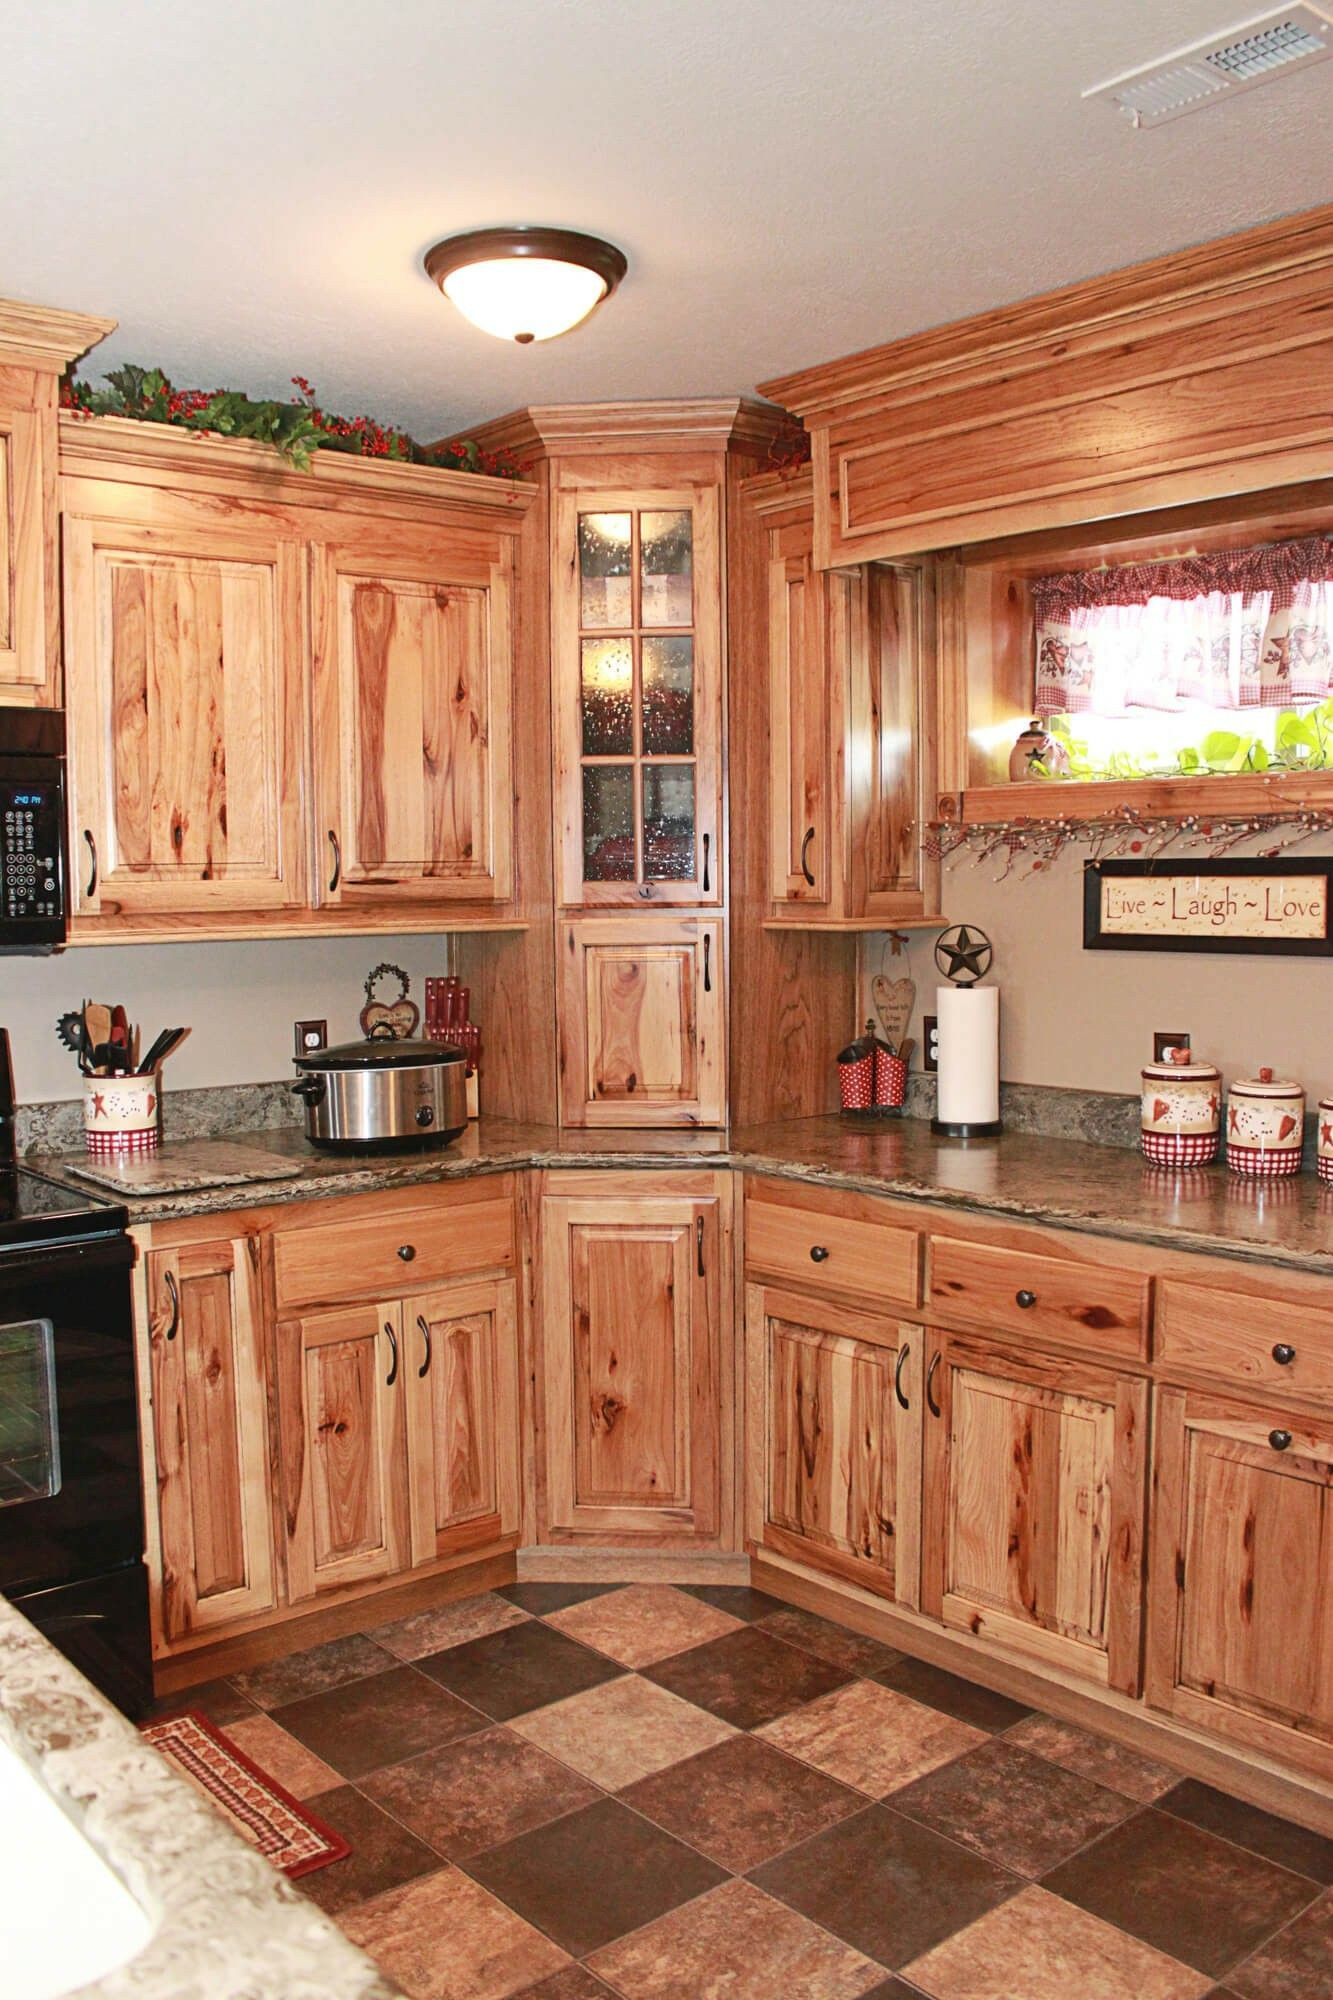 Premium Kitchen Cabinets: 15 Best Rustic Kitchen Cabinet Ideas And Design Gallery